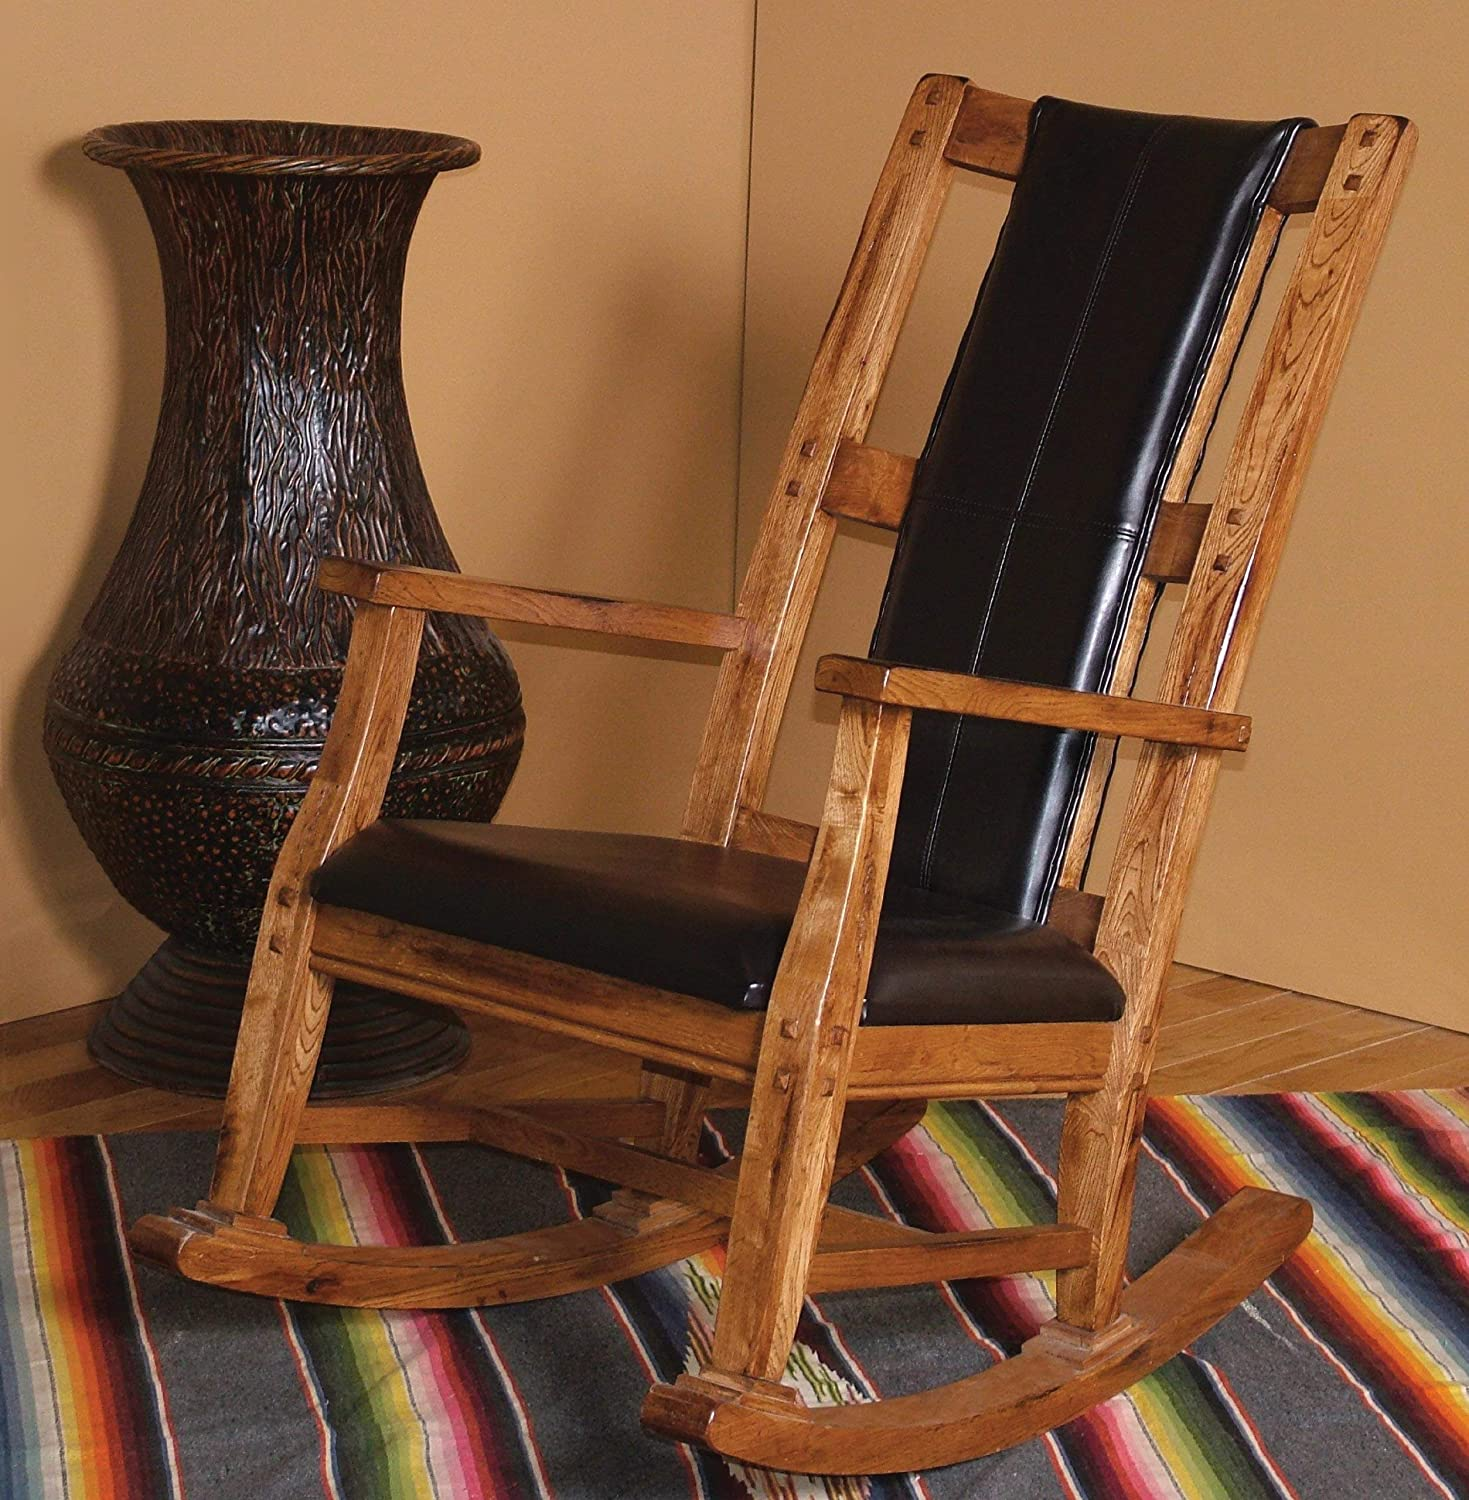 Sunny Designs 1935RO Sedona Rocker with Black Seat and Back, Rustic Oak Finish